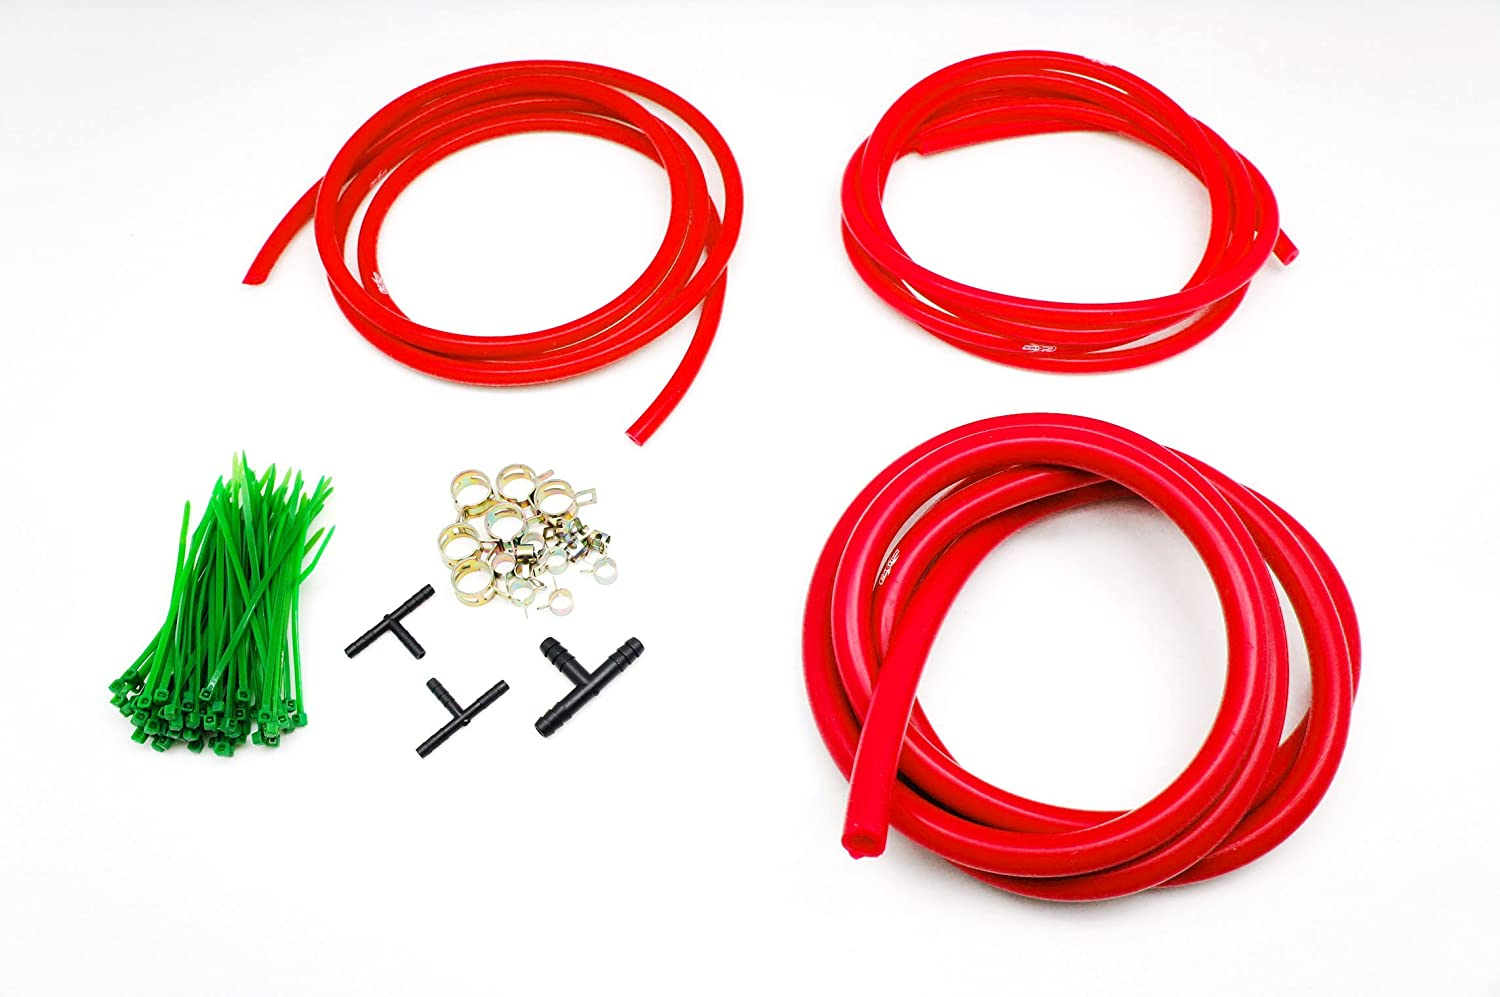 Autobahn88 Engine Room Silicone Vacuum Hose Dress Up DIY Kit, Fit All Models of Mustang (Red)